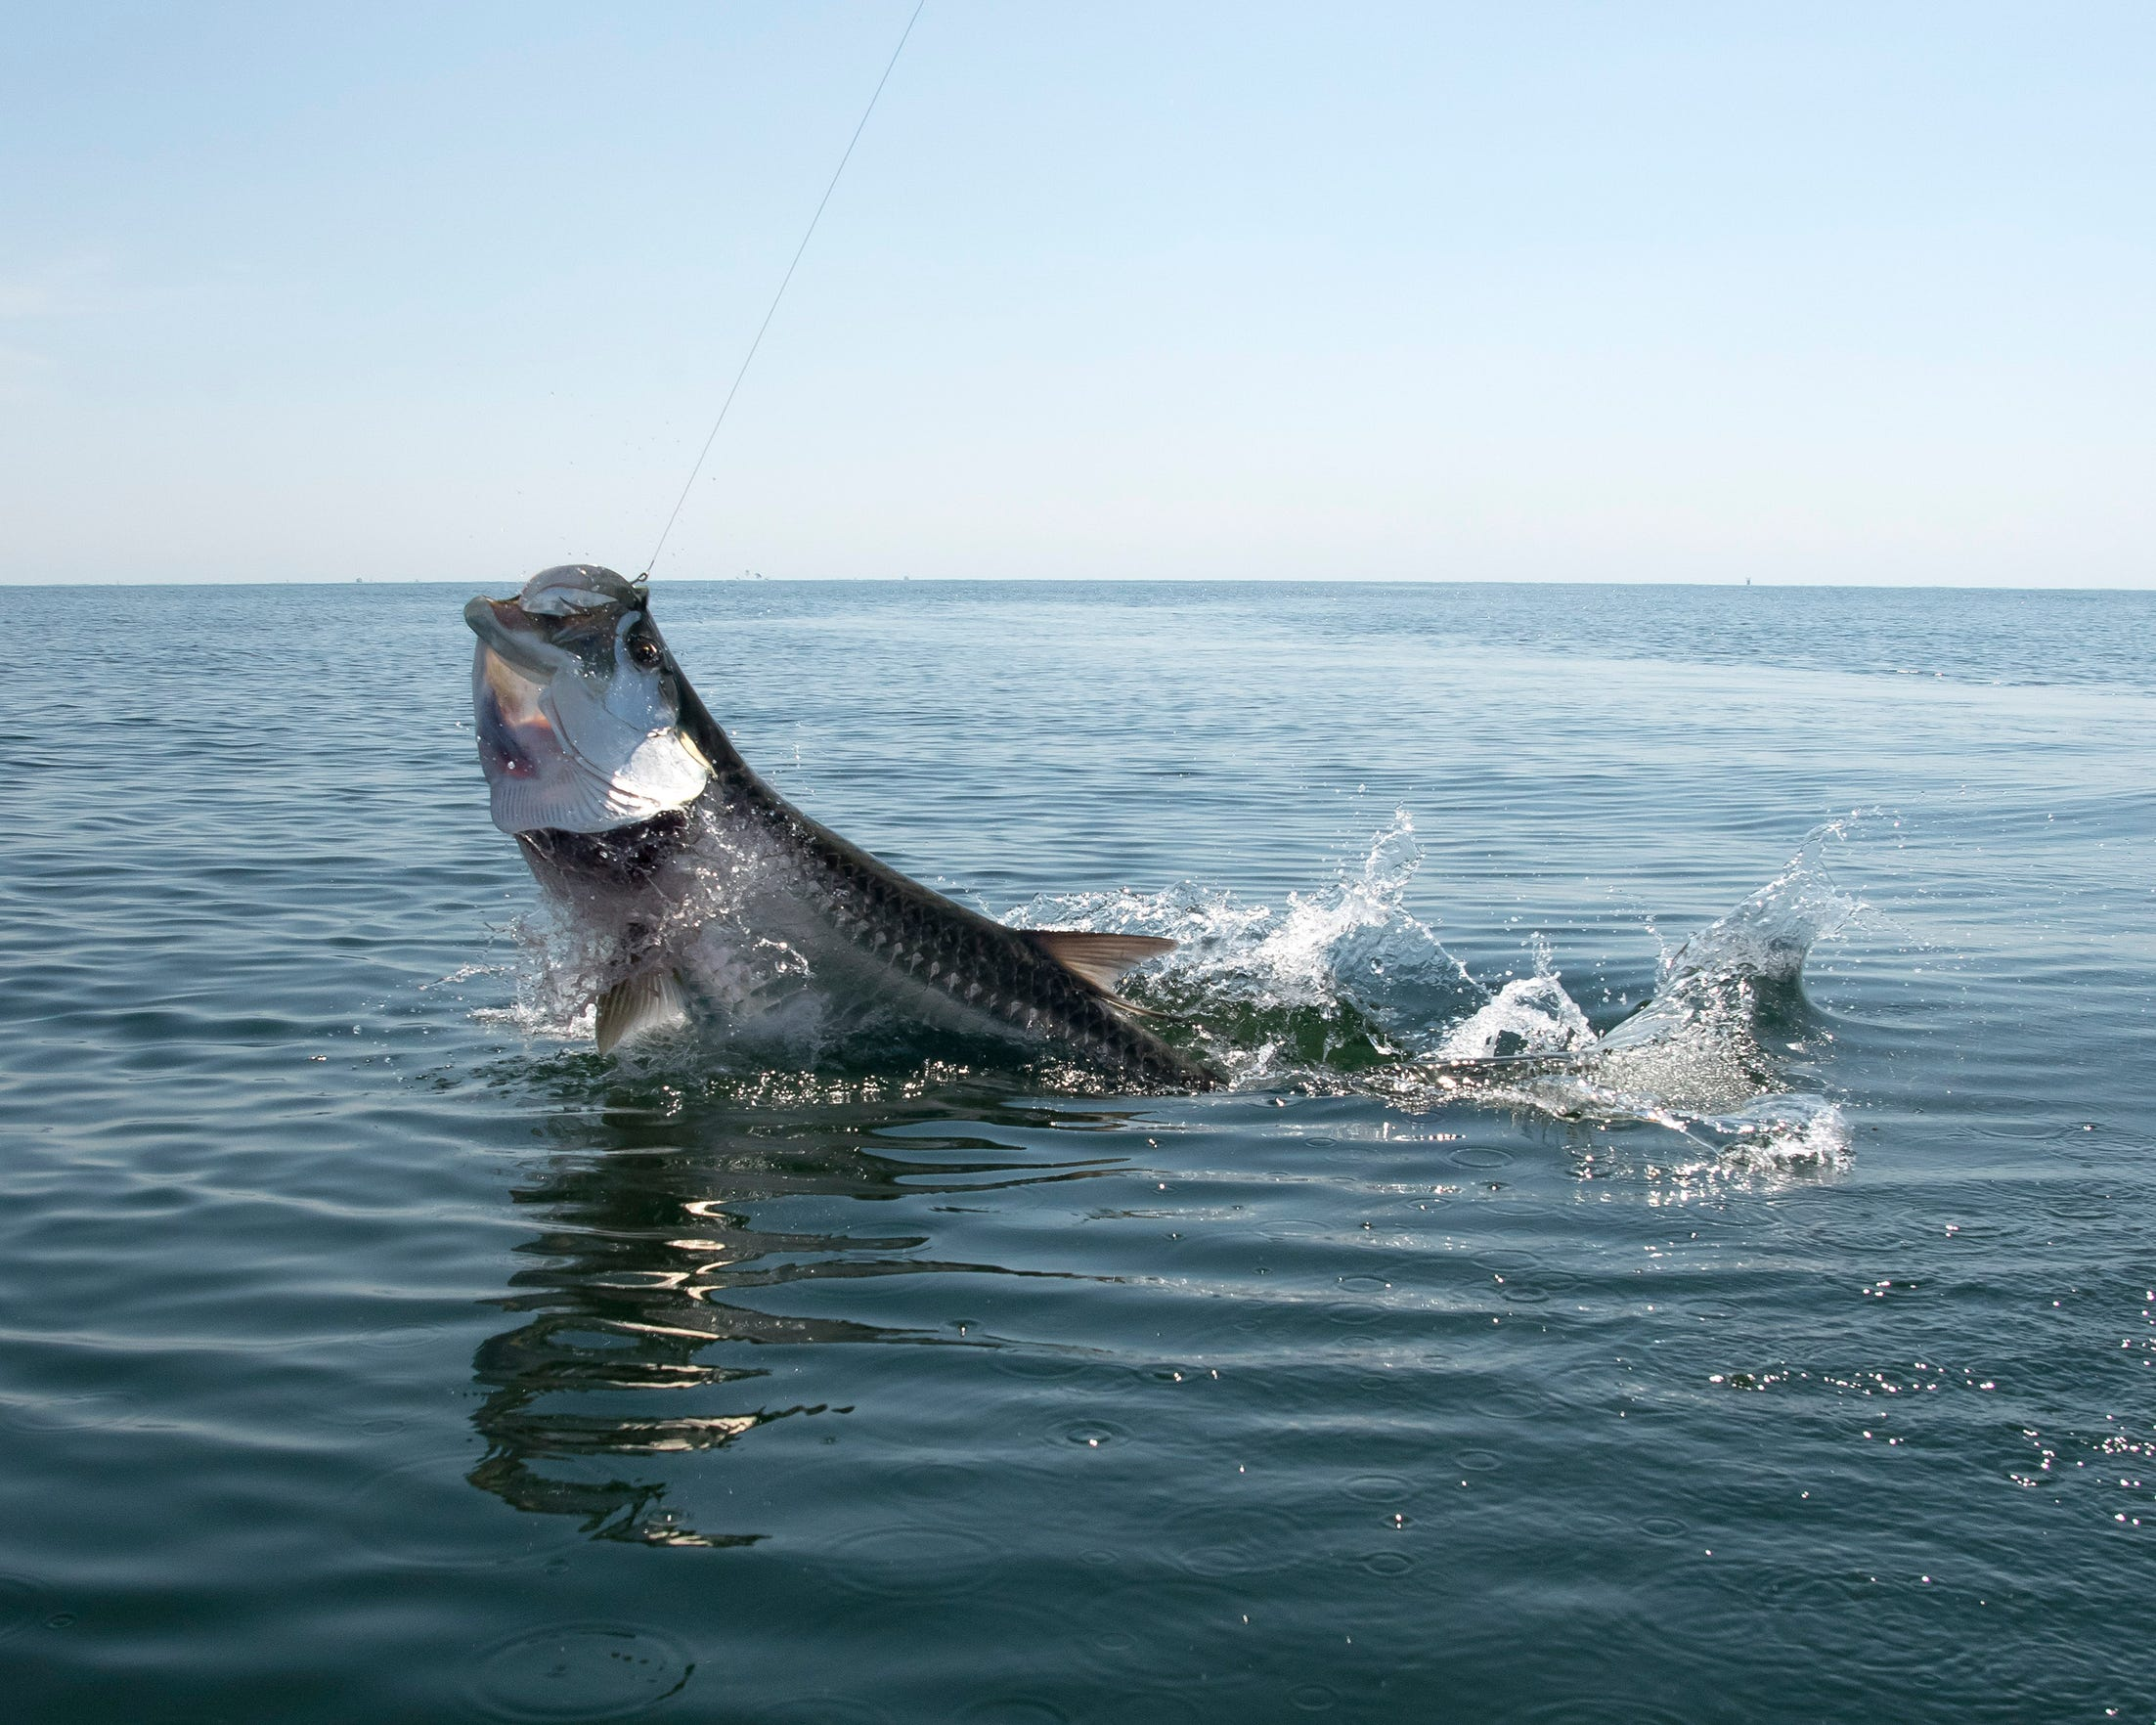 It's not unusual for tarpon that weight more than 100 pounds to be seen along the Texas Gulf coast, but relatively few are caught by anglers.